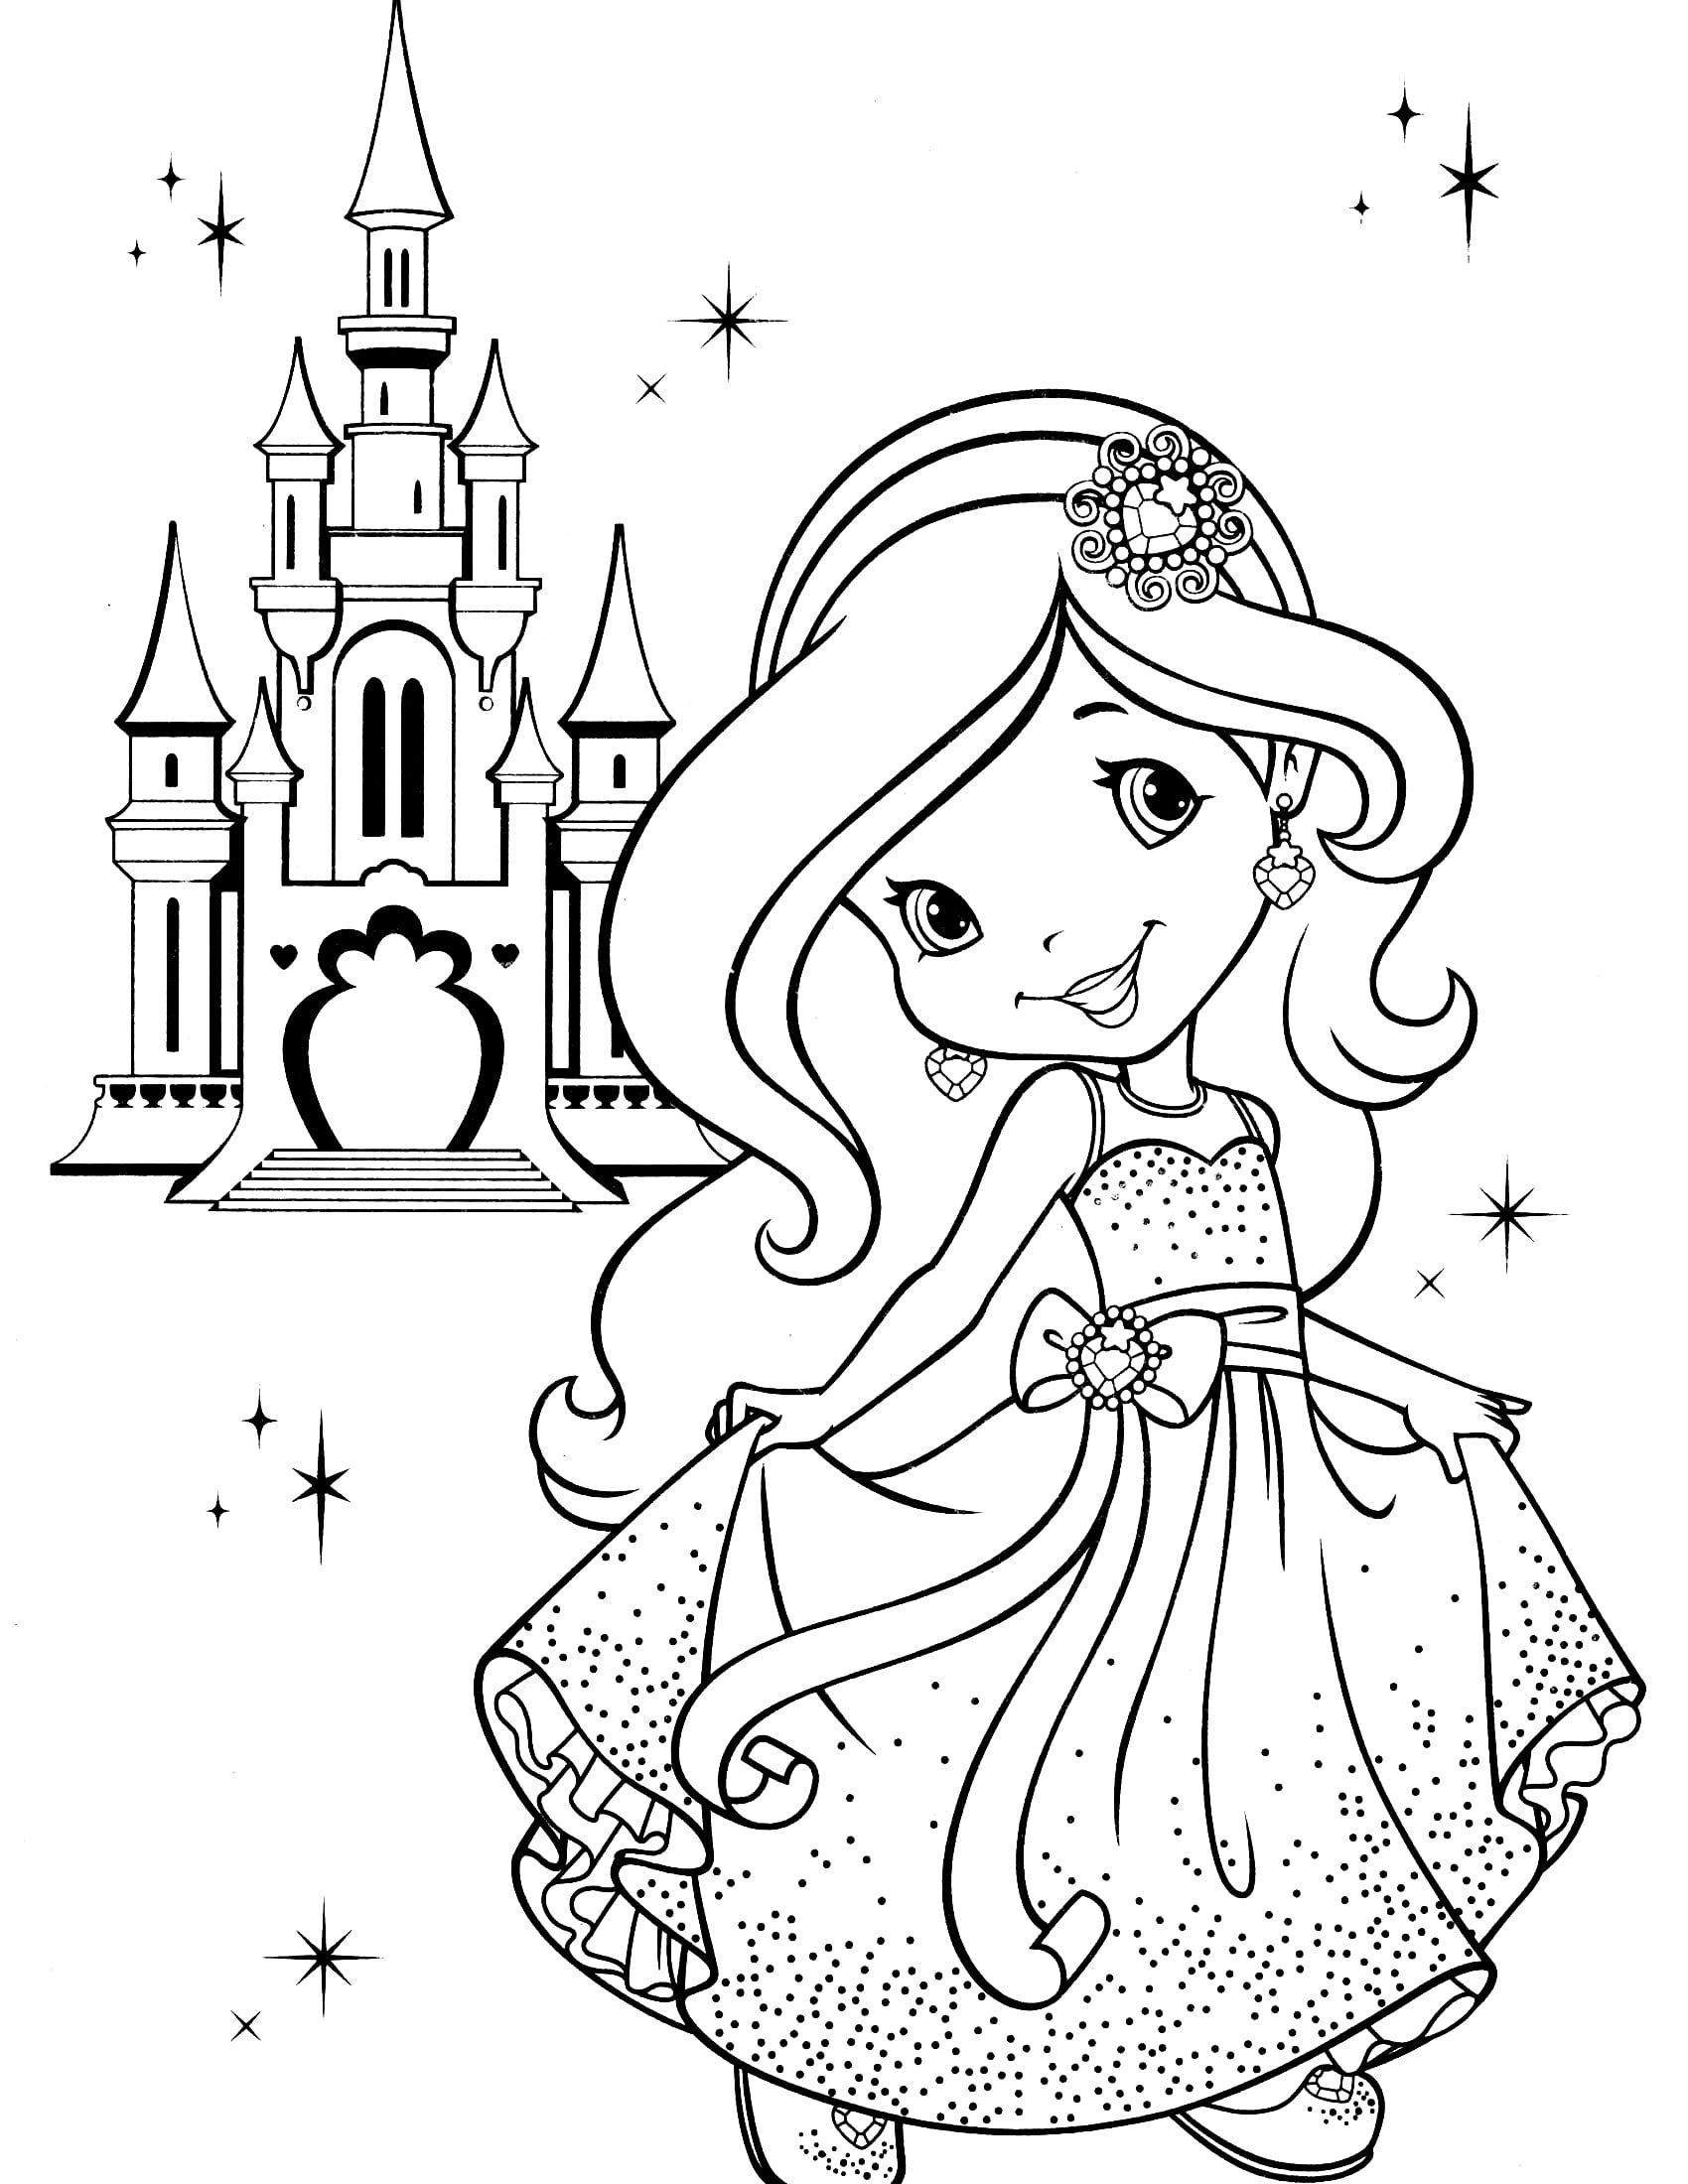 Strawberry Shortcake Coloring Pages 2 Page